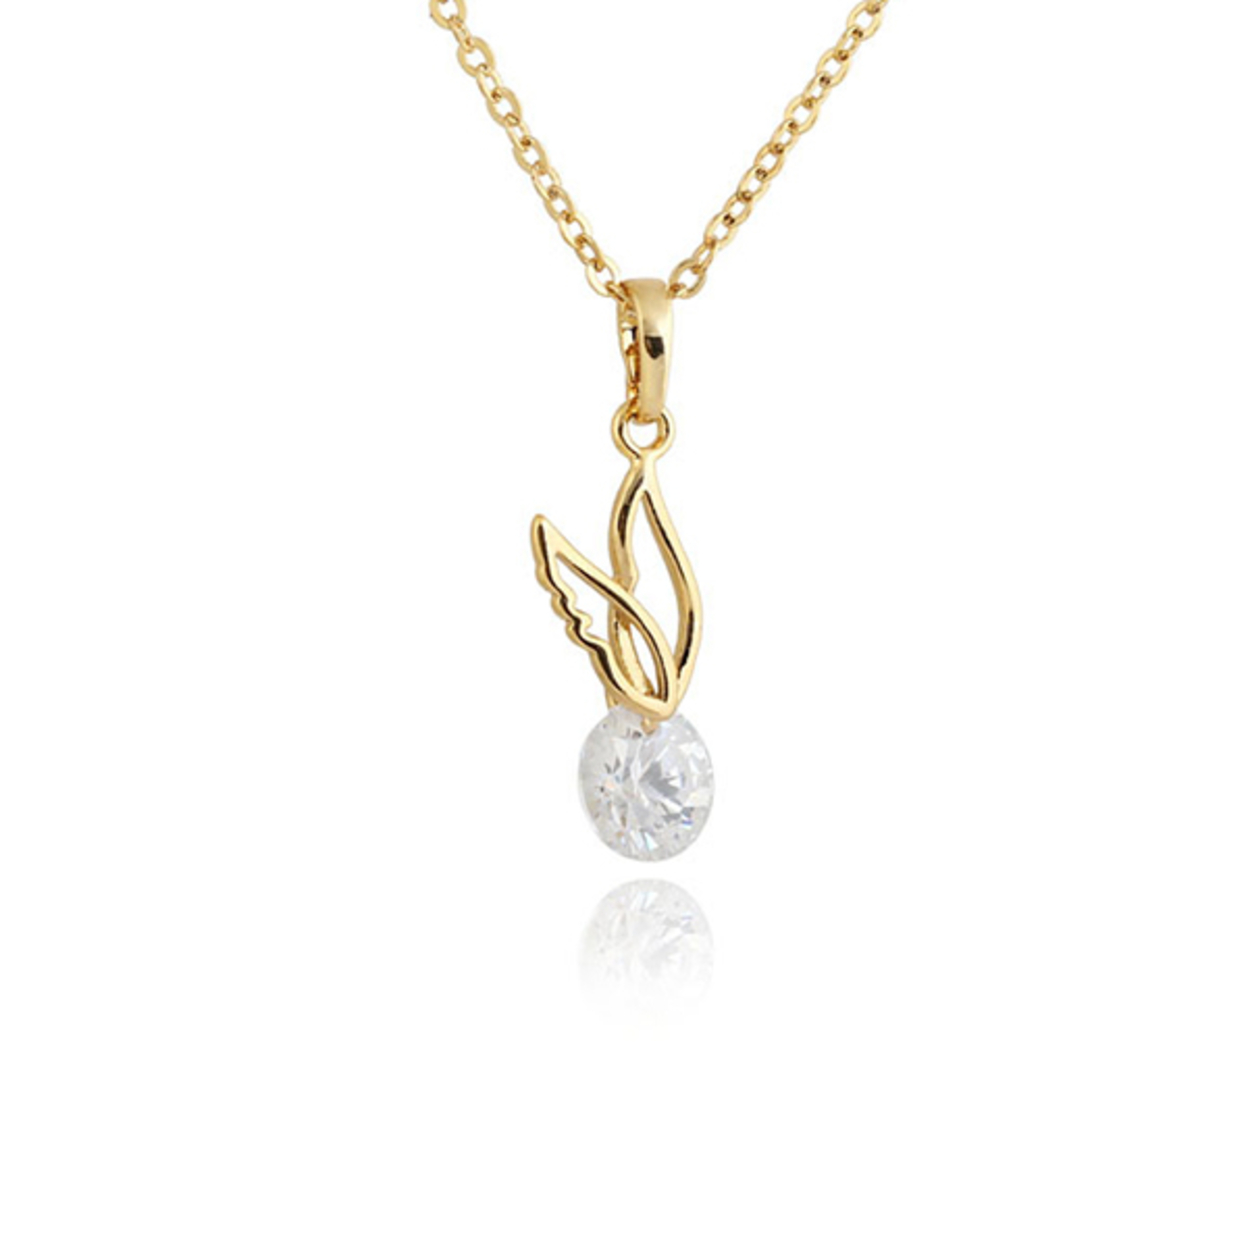 24k Yellow Gold Overlay Sterling Silver 1.5ct Round Cz Diamond Simple Wing Pendant Necklace